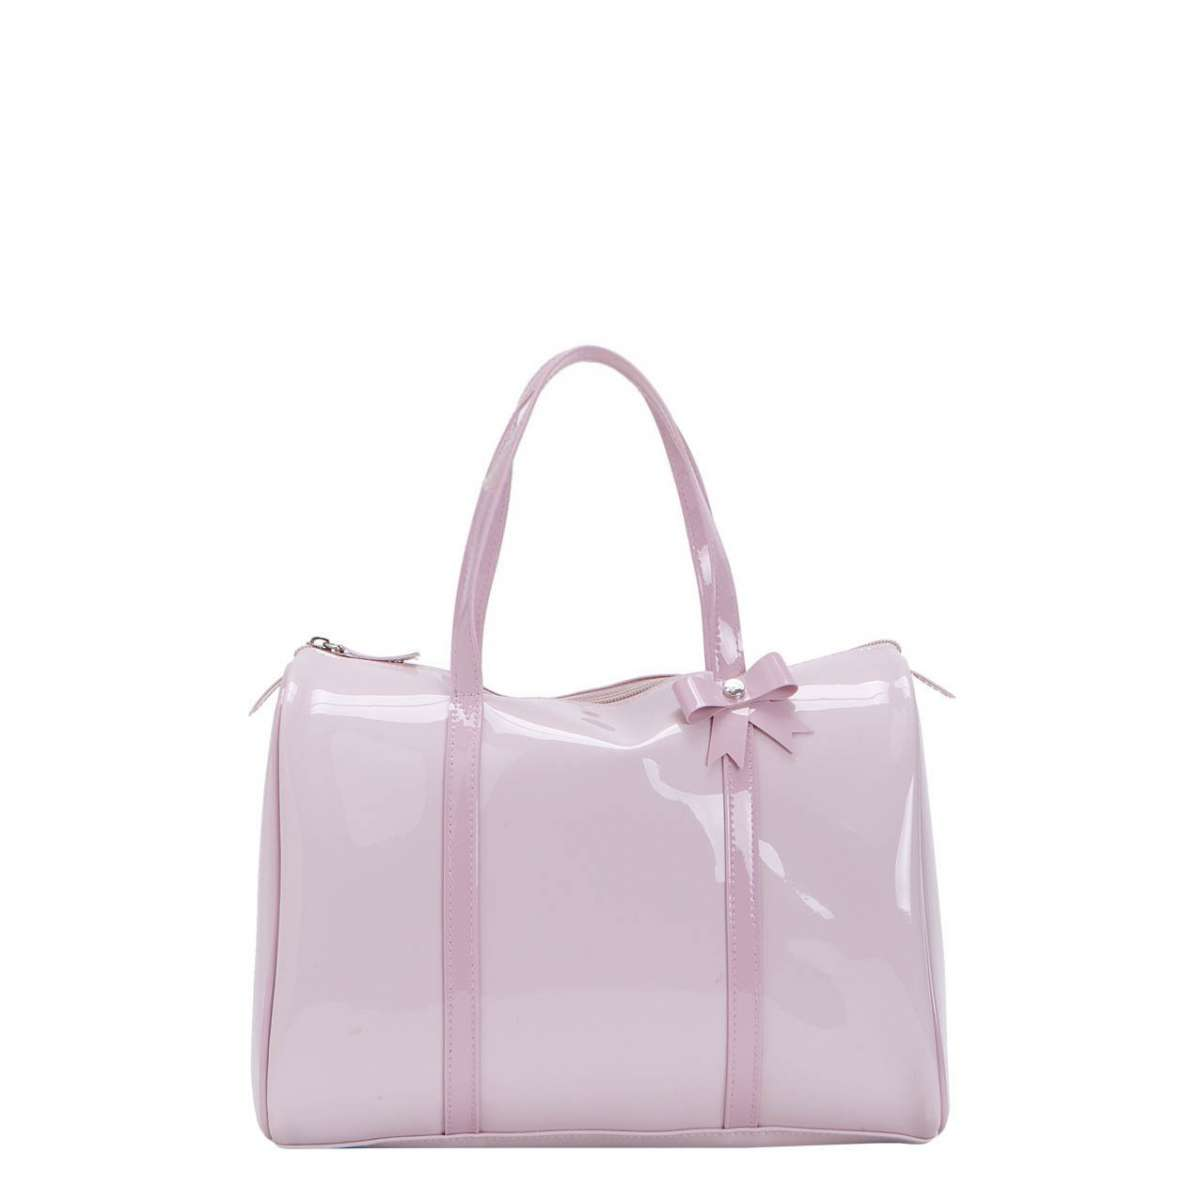 Bauletto rosa candy lucido